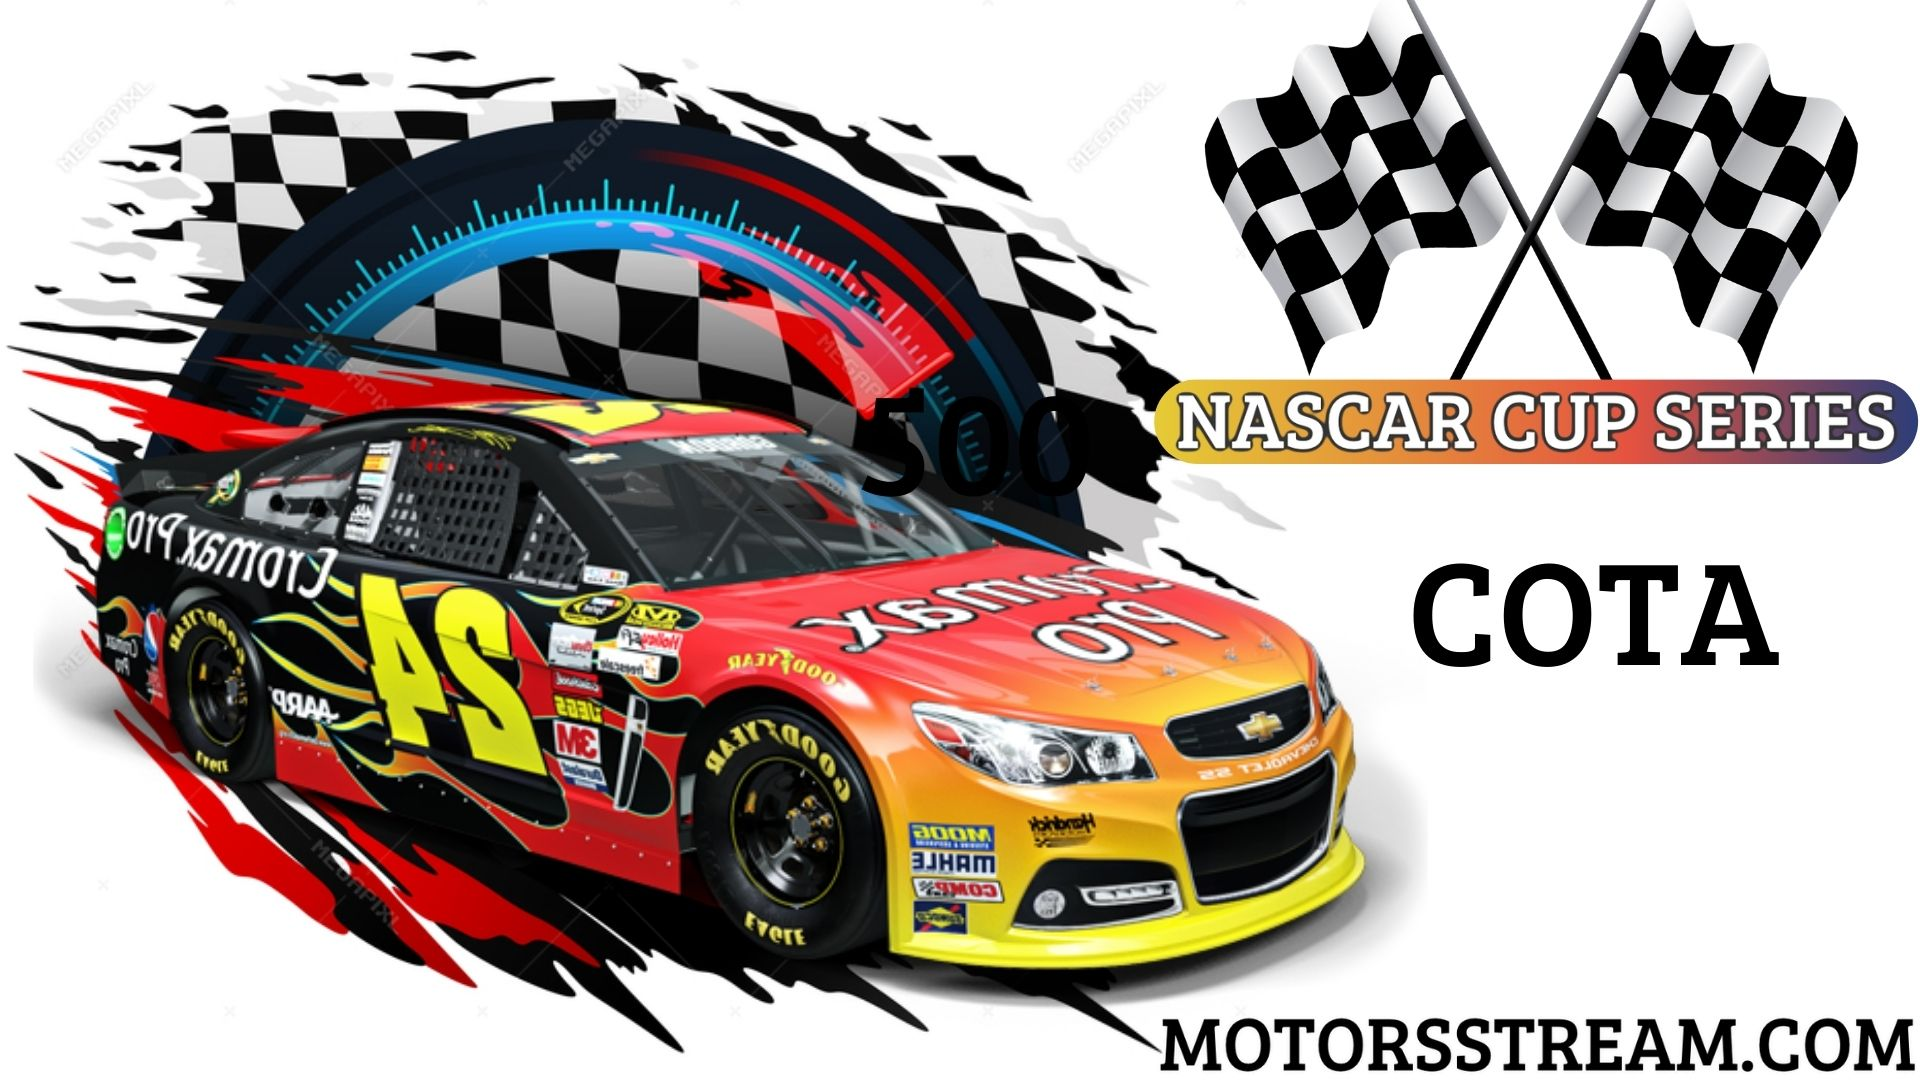 NASCAR Cup Series COTA Race Live Streaming